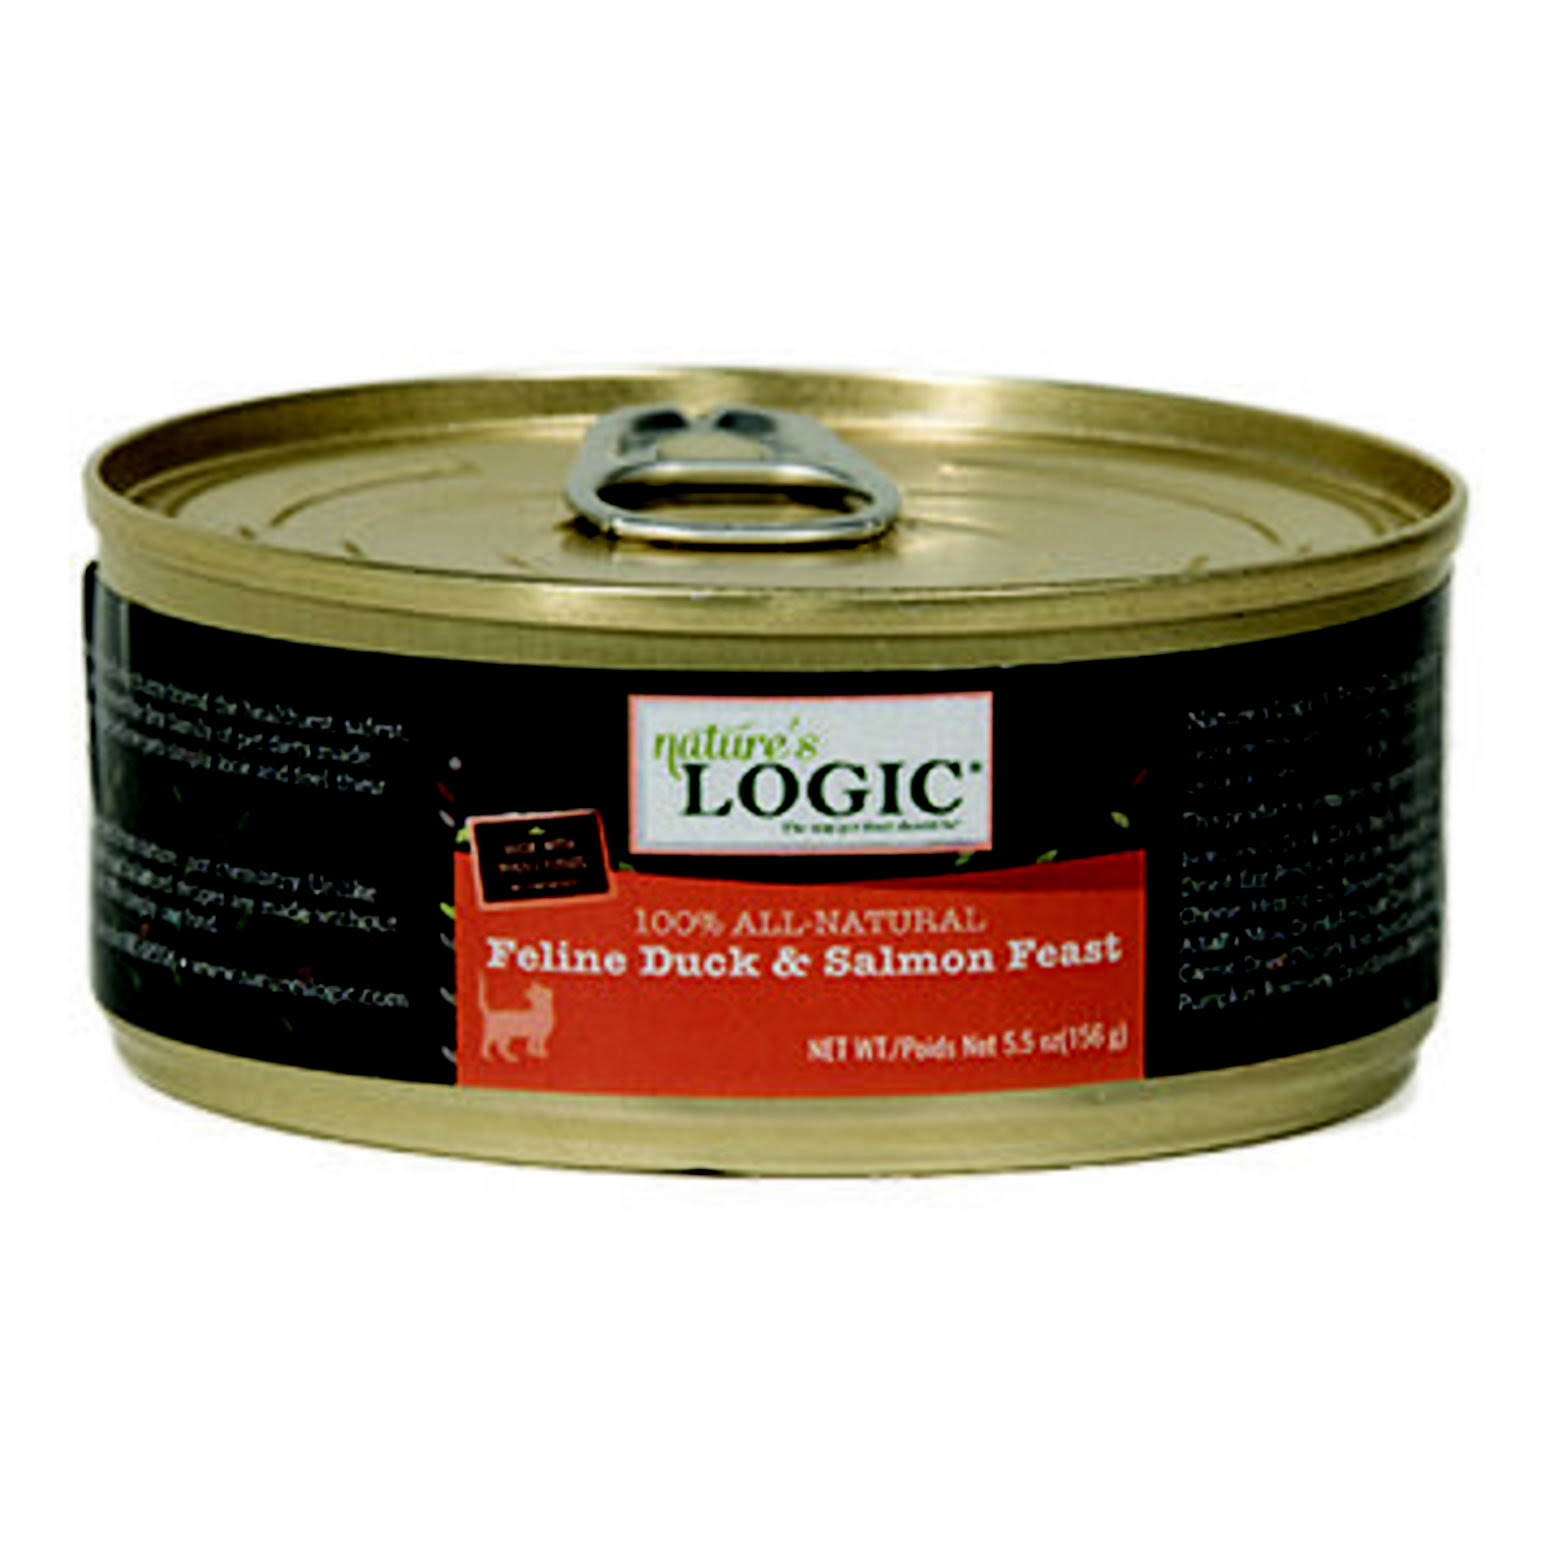 Nature's Logic Cat Food - Feline Duck and Salmon Dinner Fare, 5.5oz